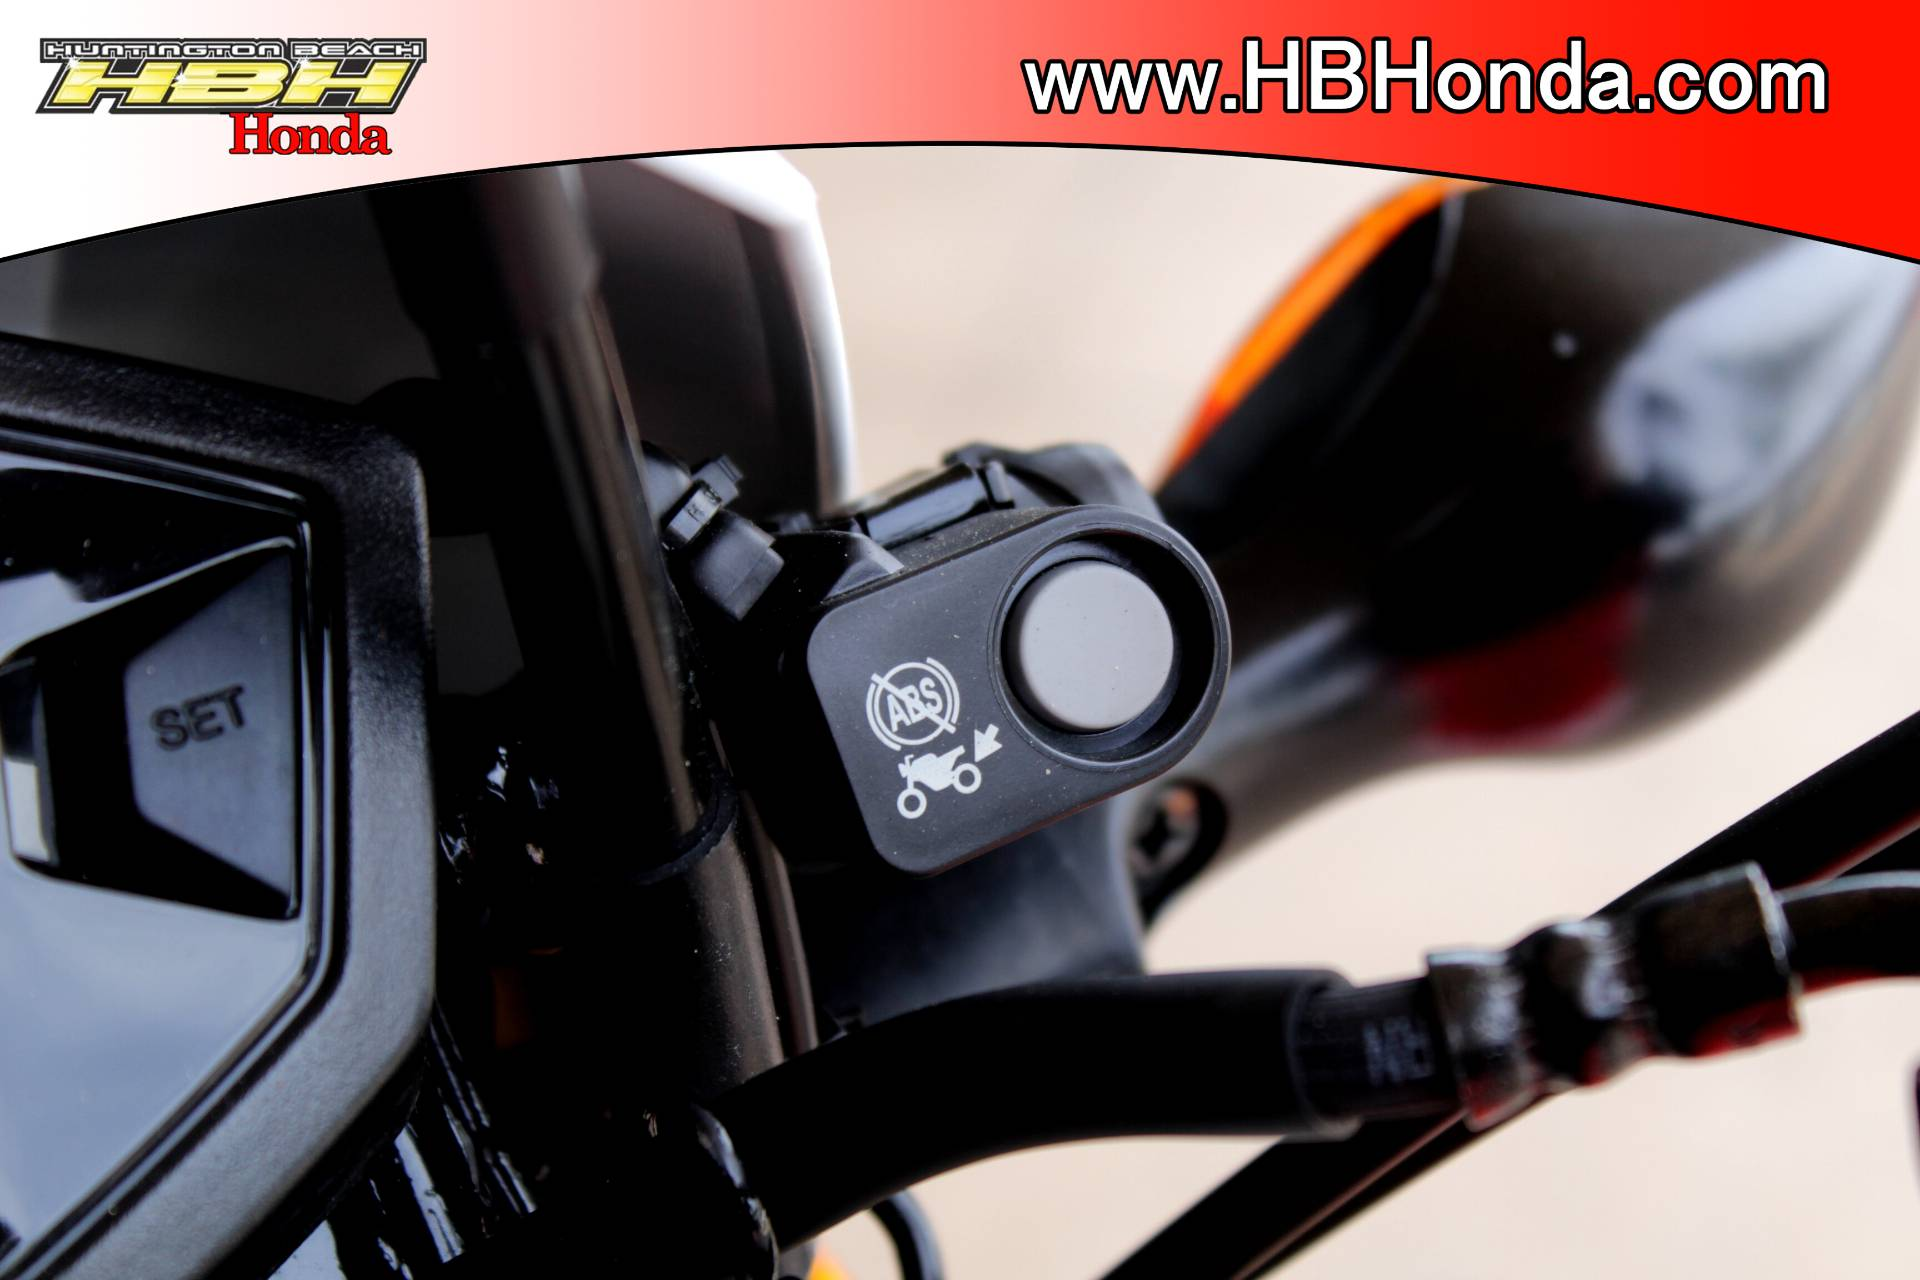 New 2017 Honda CRF250L ABS Motorcycles for sale in Huntington Beach